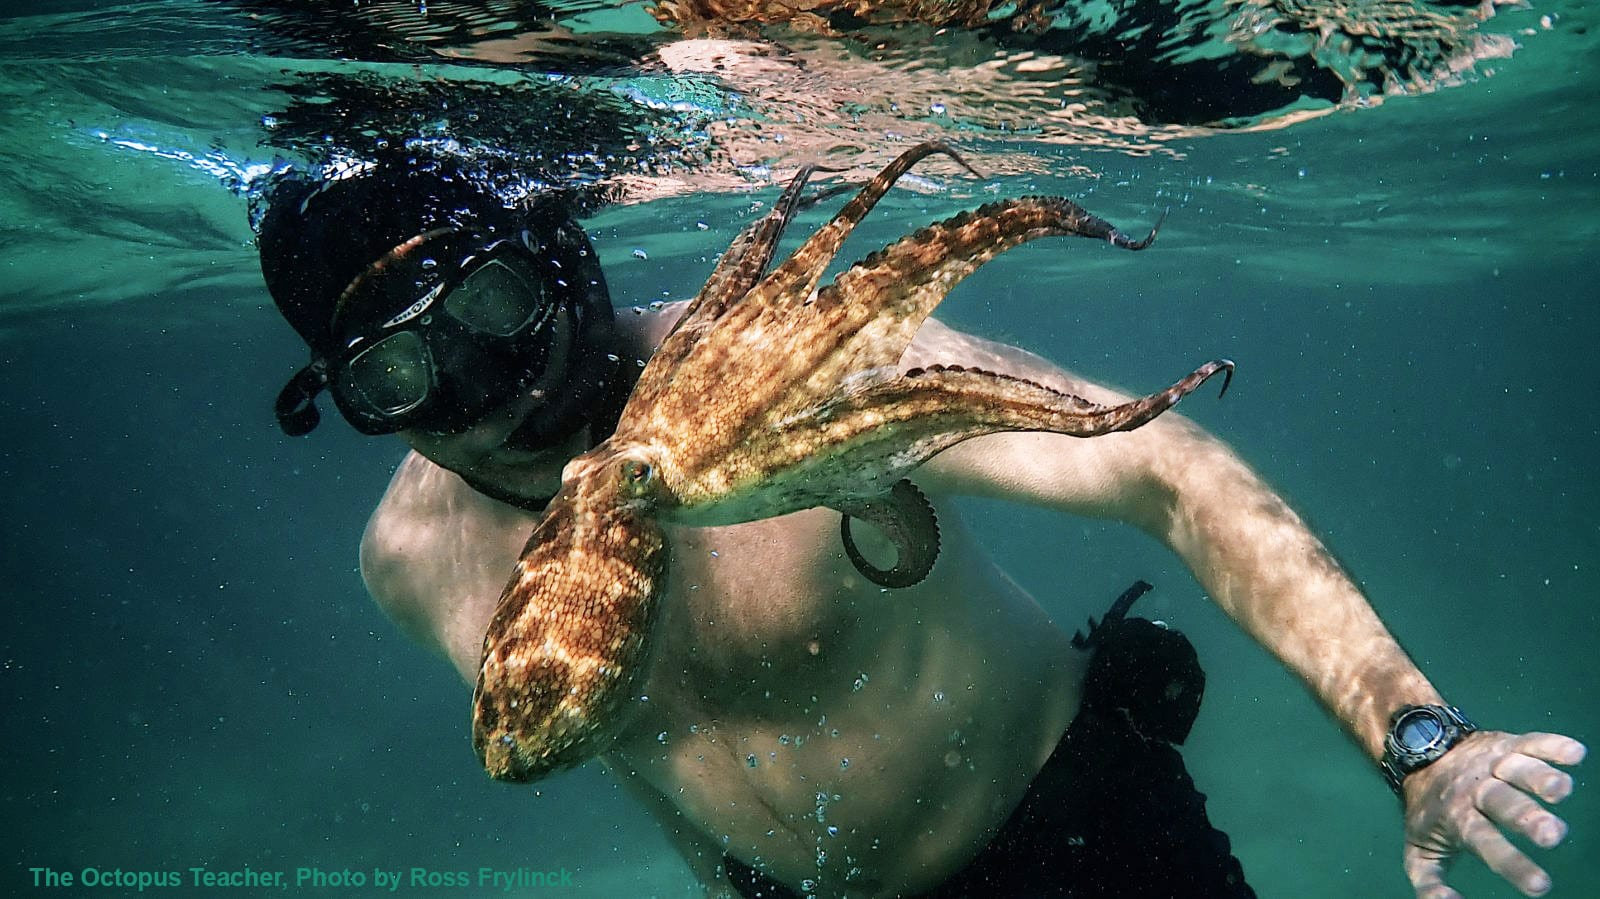 Photo of the filmmaker and the Octopus Teacher | Photo credit: Ross Frylinck